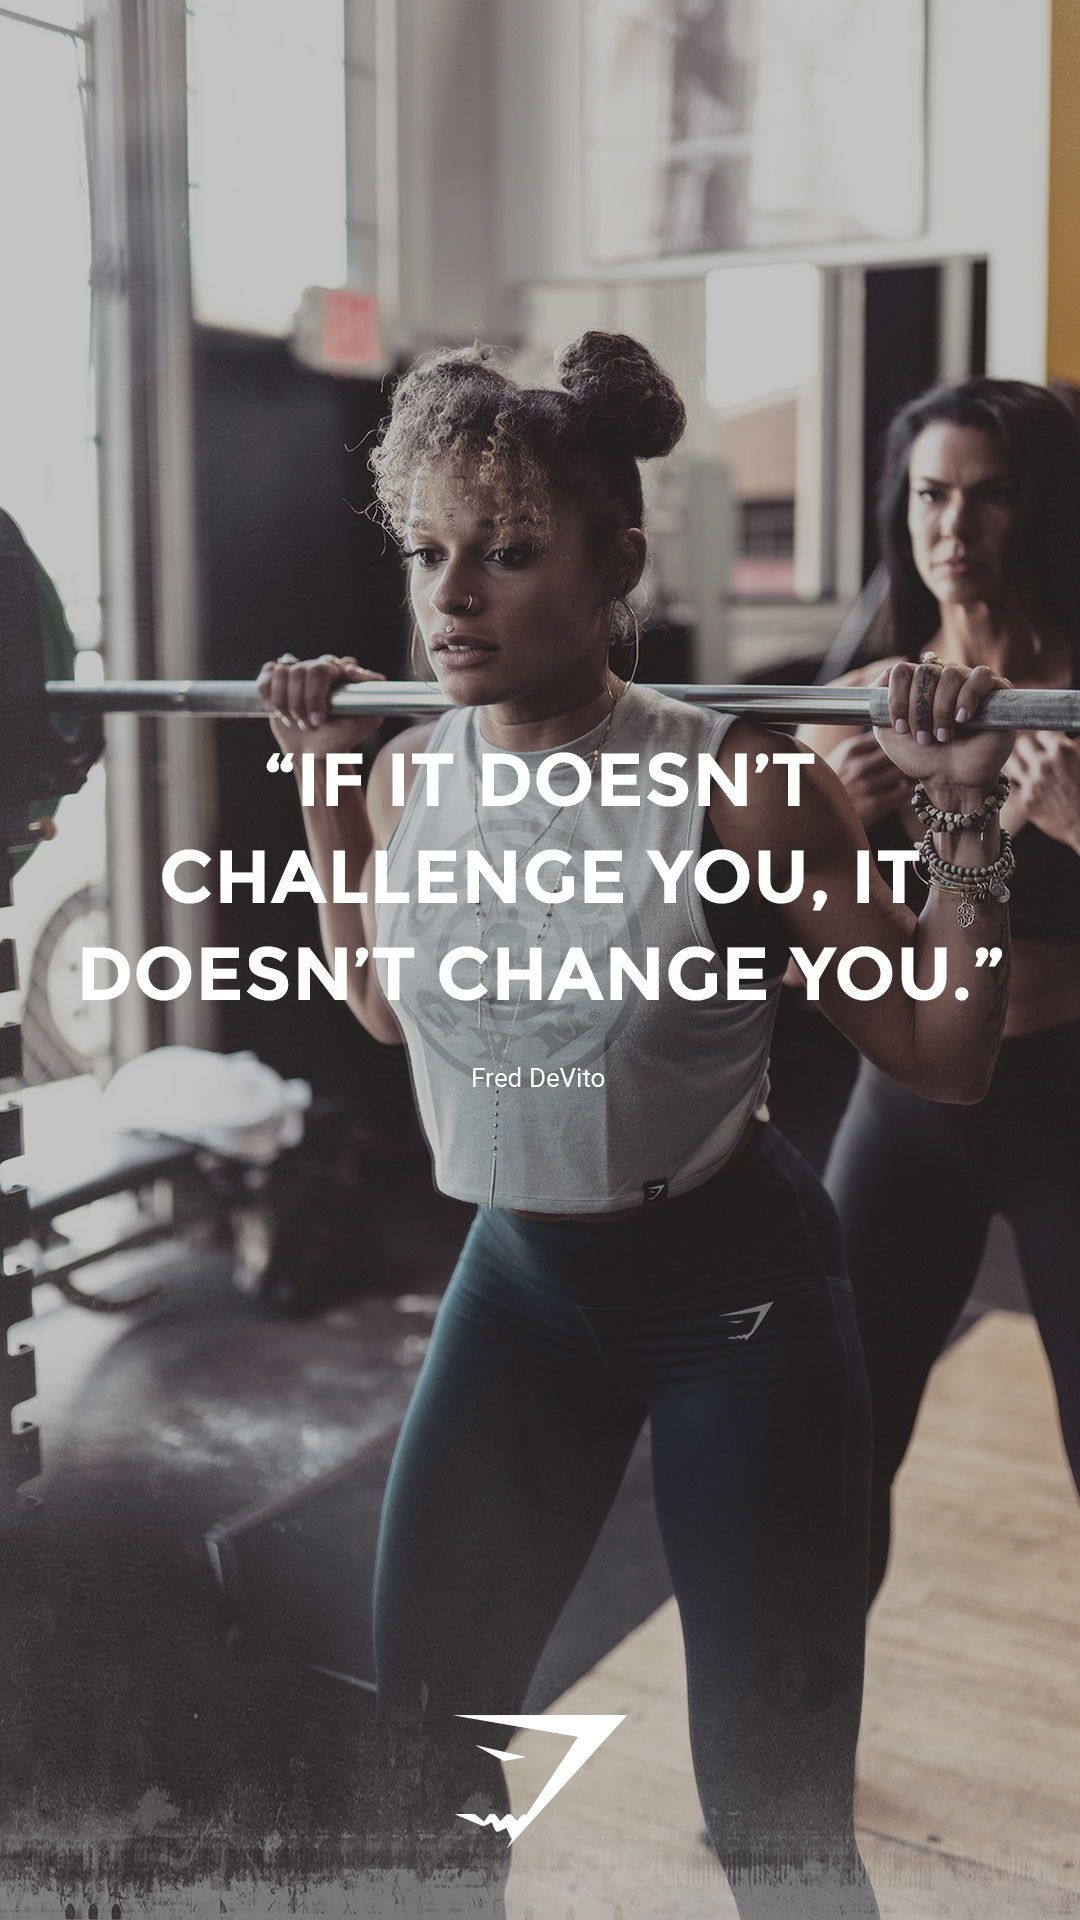 #wwwthefitsite #motivation #thefitsite #challenge #exercise #fitness #fitsite #doesnt #change #you #...